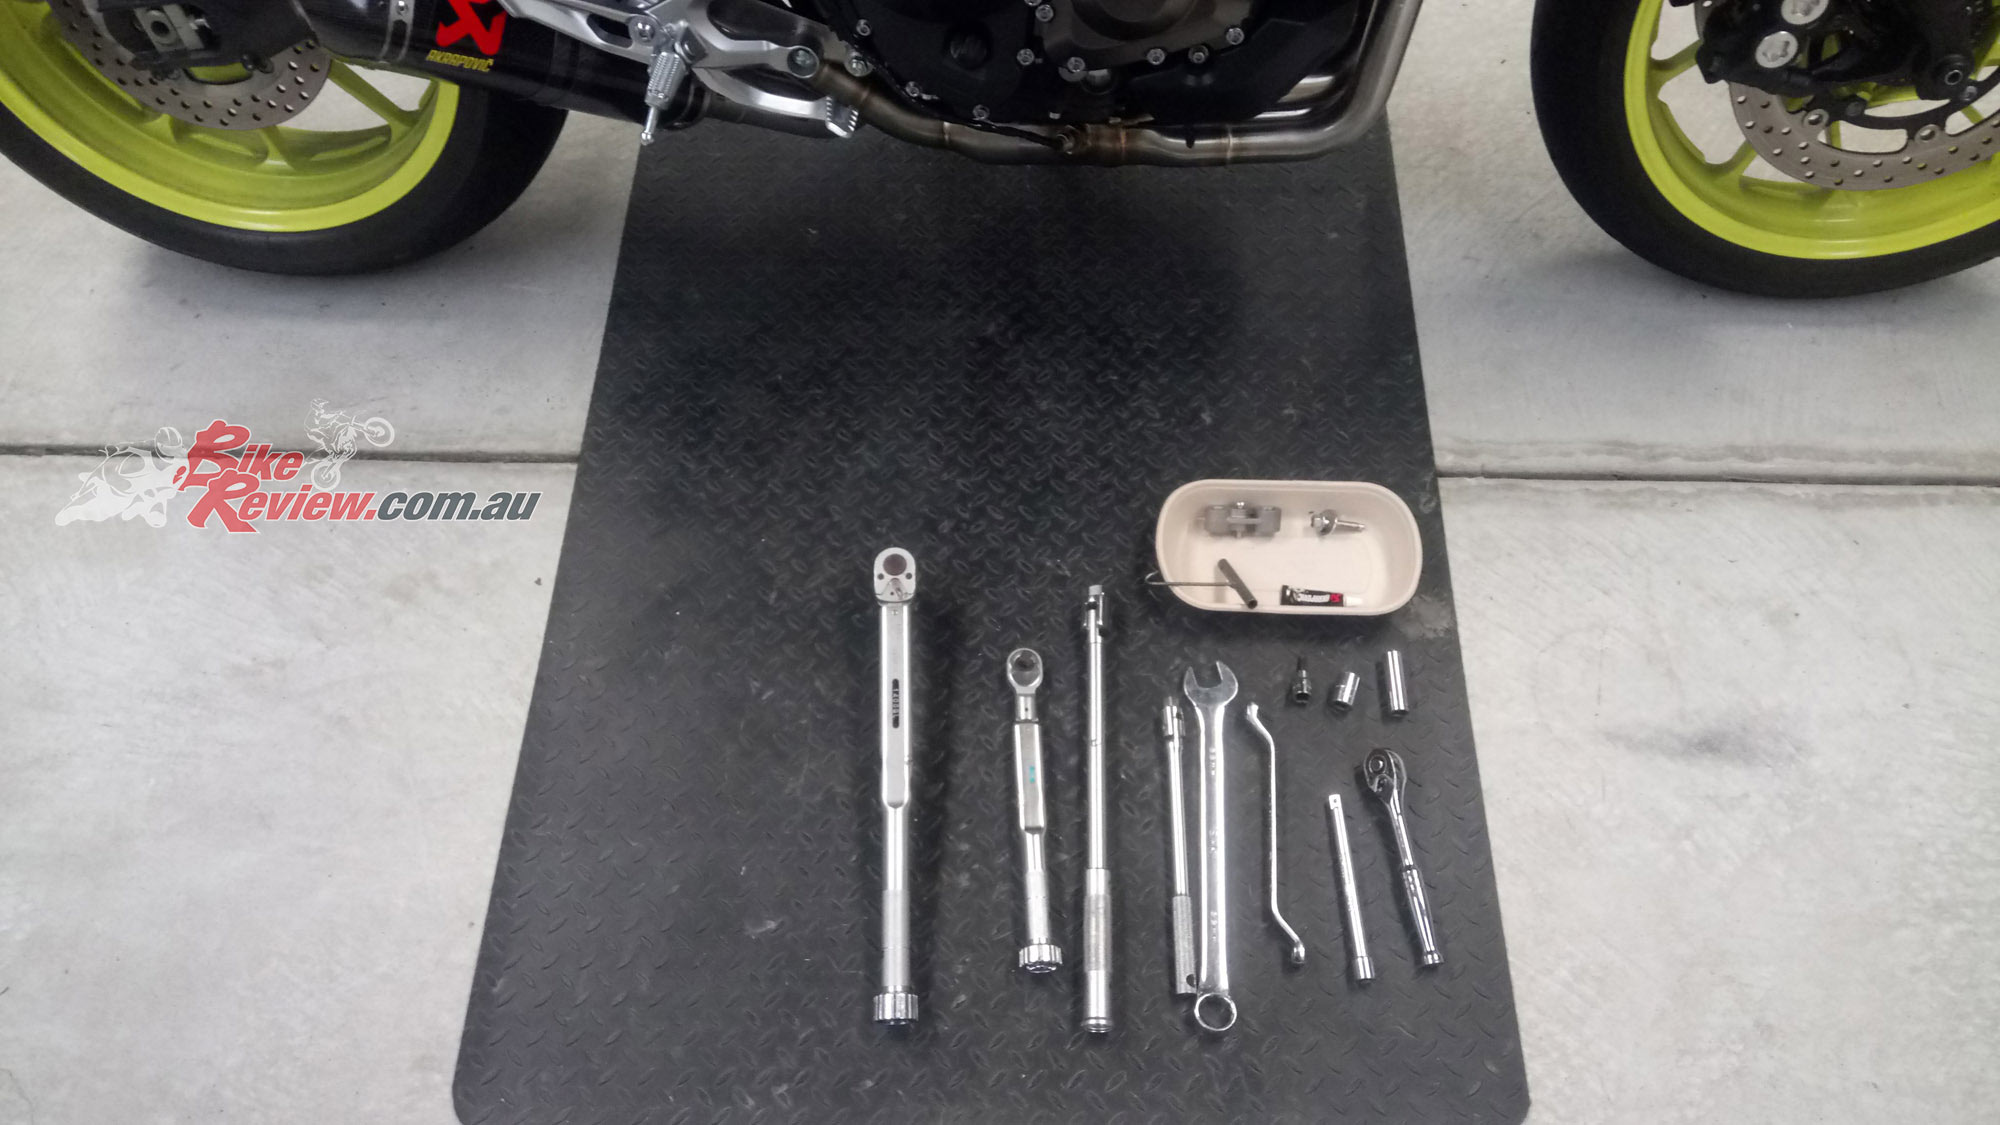 All youll need are basic tools, similar to what youd use for basic servicing.